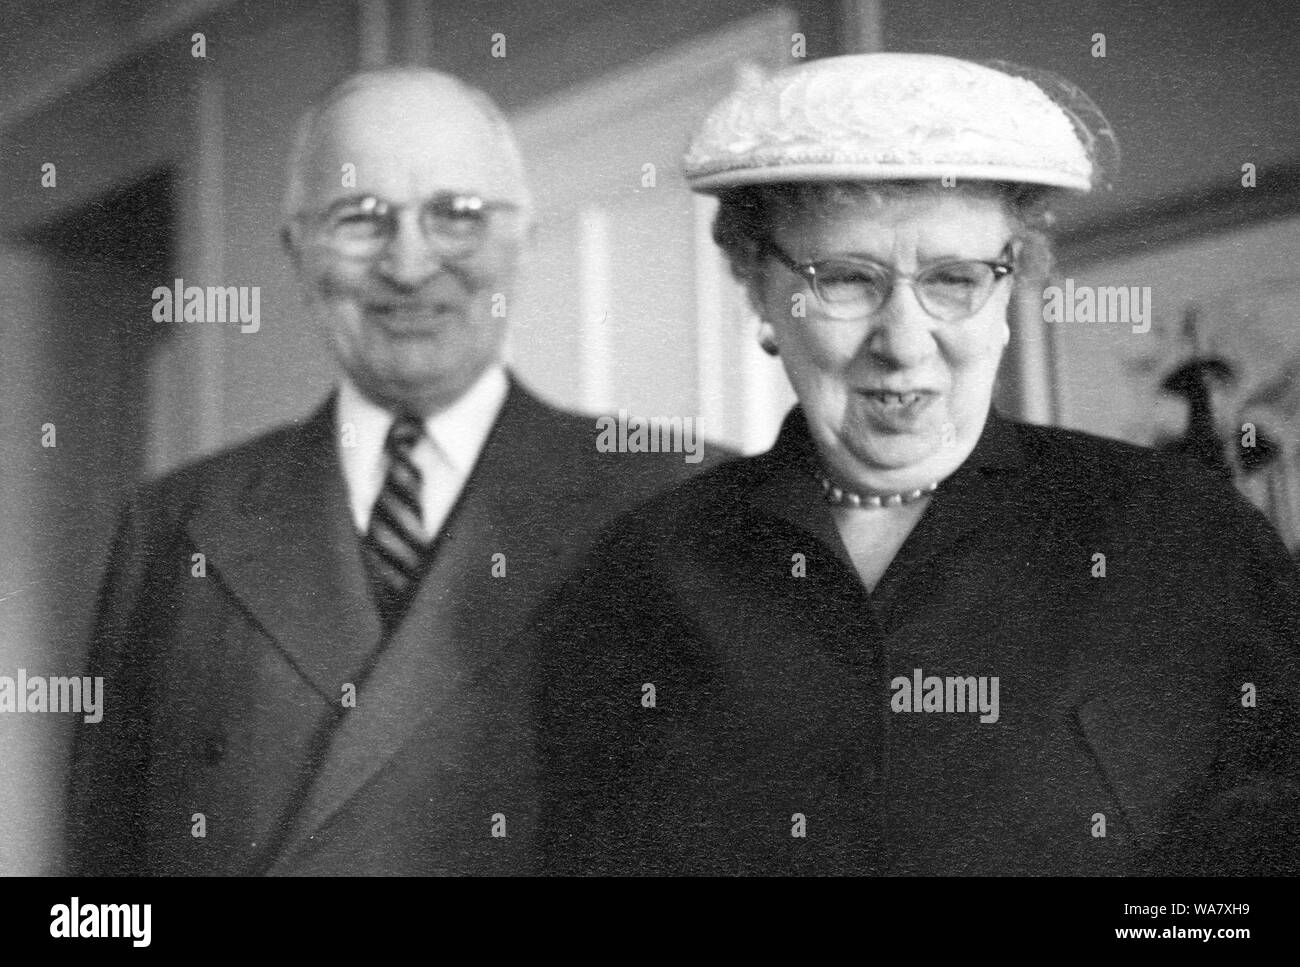 Former President Harry S. Truman and Bess Truman,1960 Stock Photo